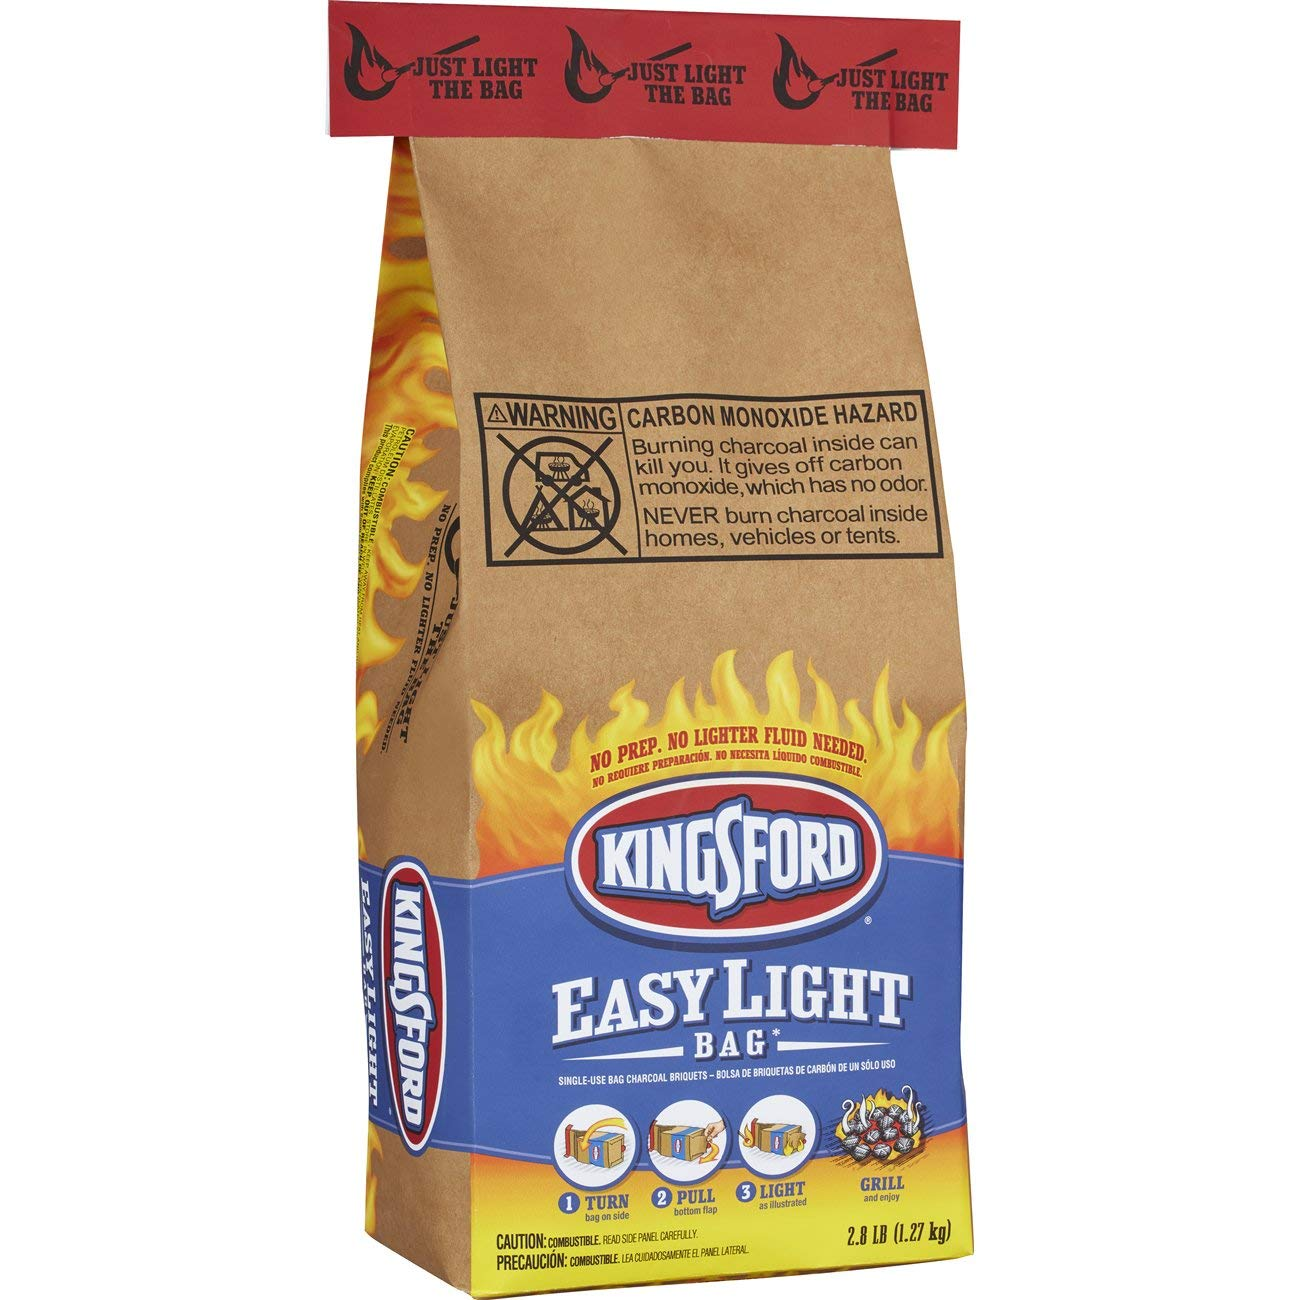 kingsford easy light bag instructions